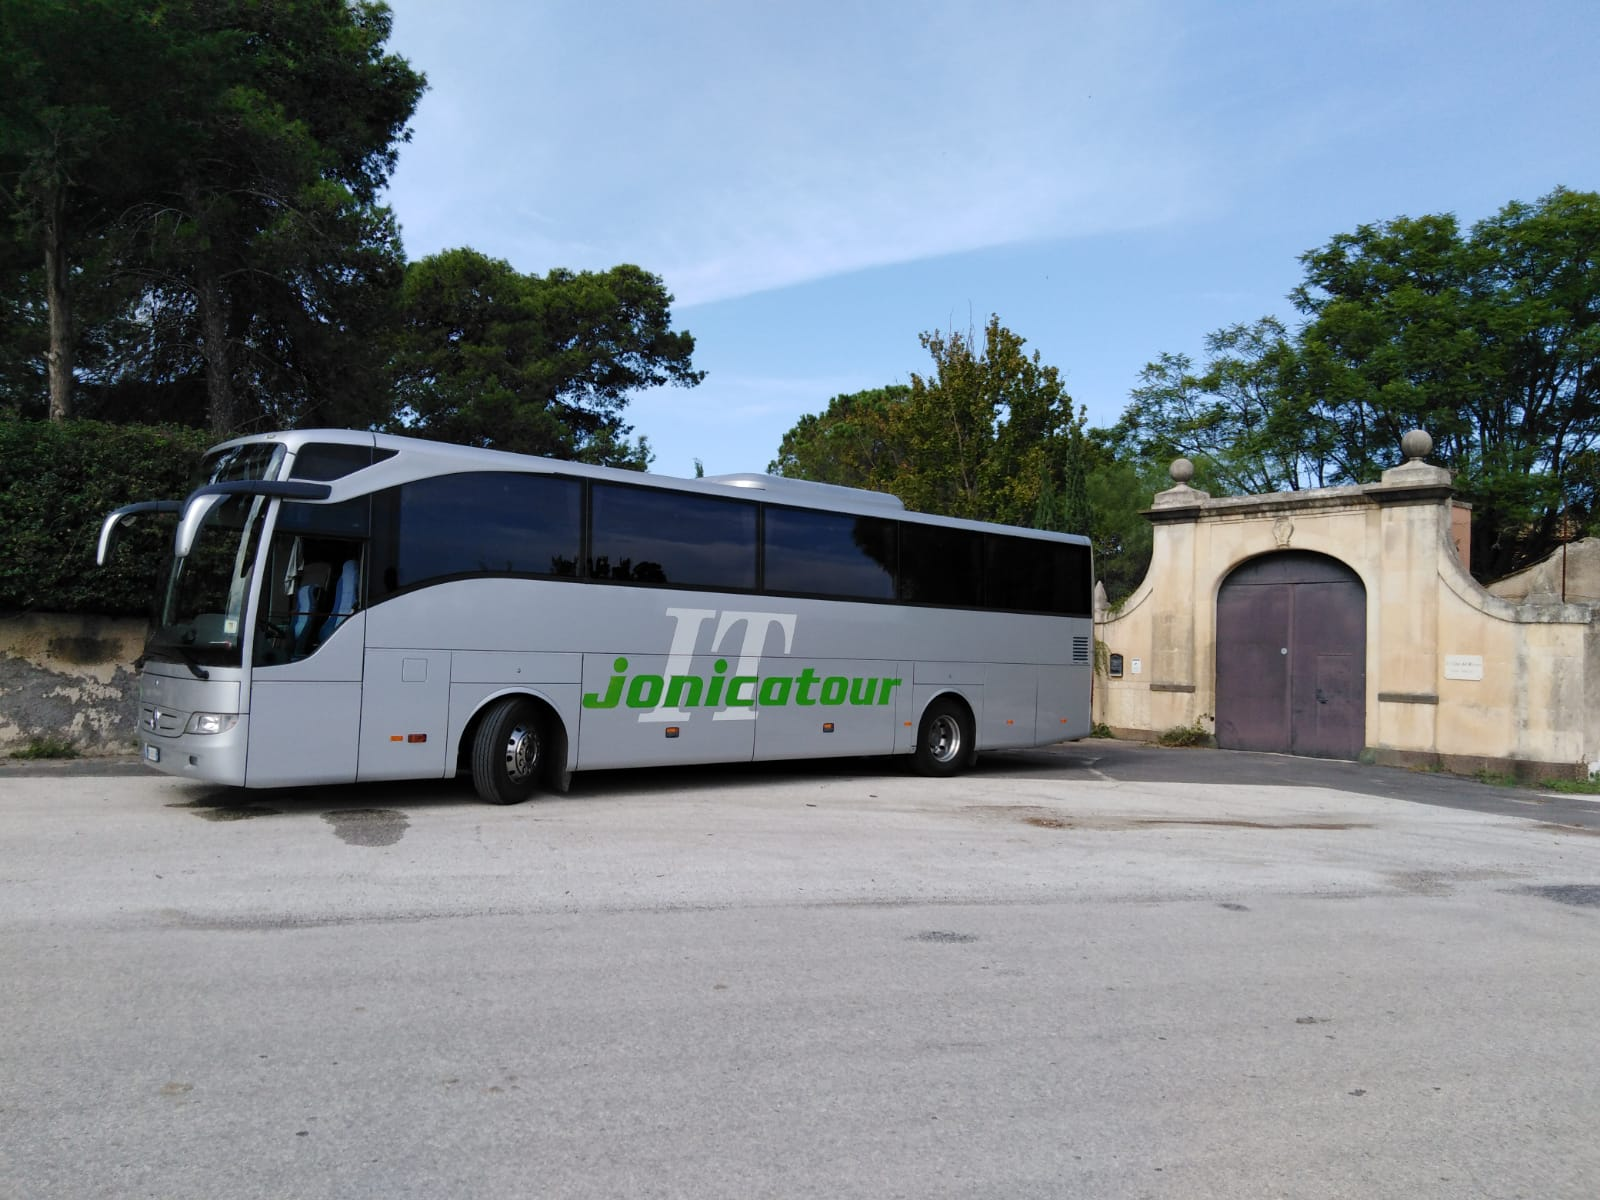 Jonicatour BUS GT